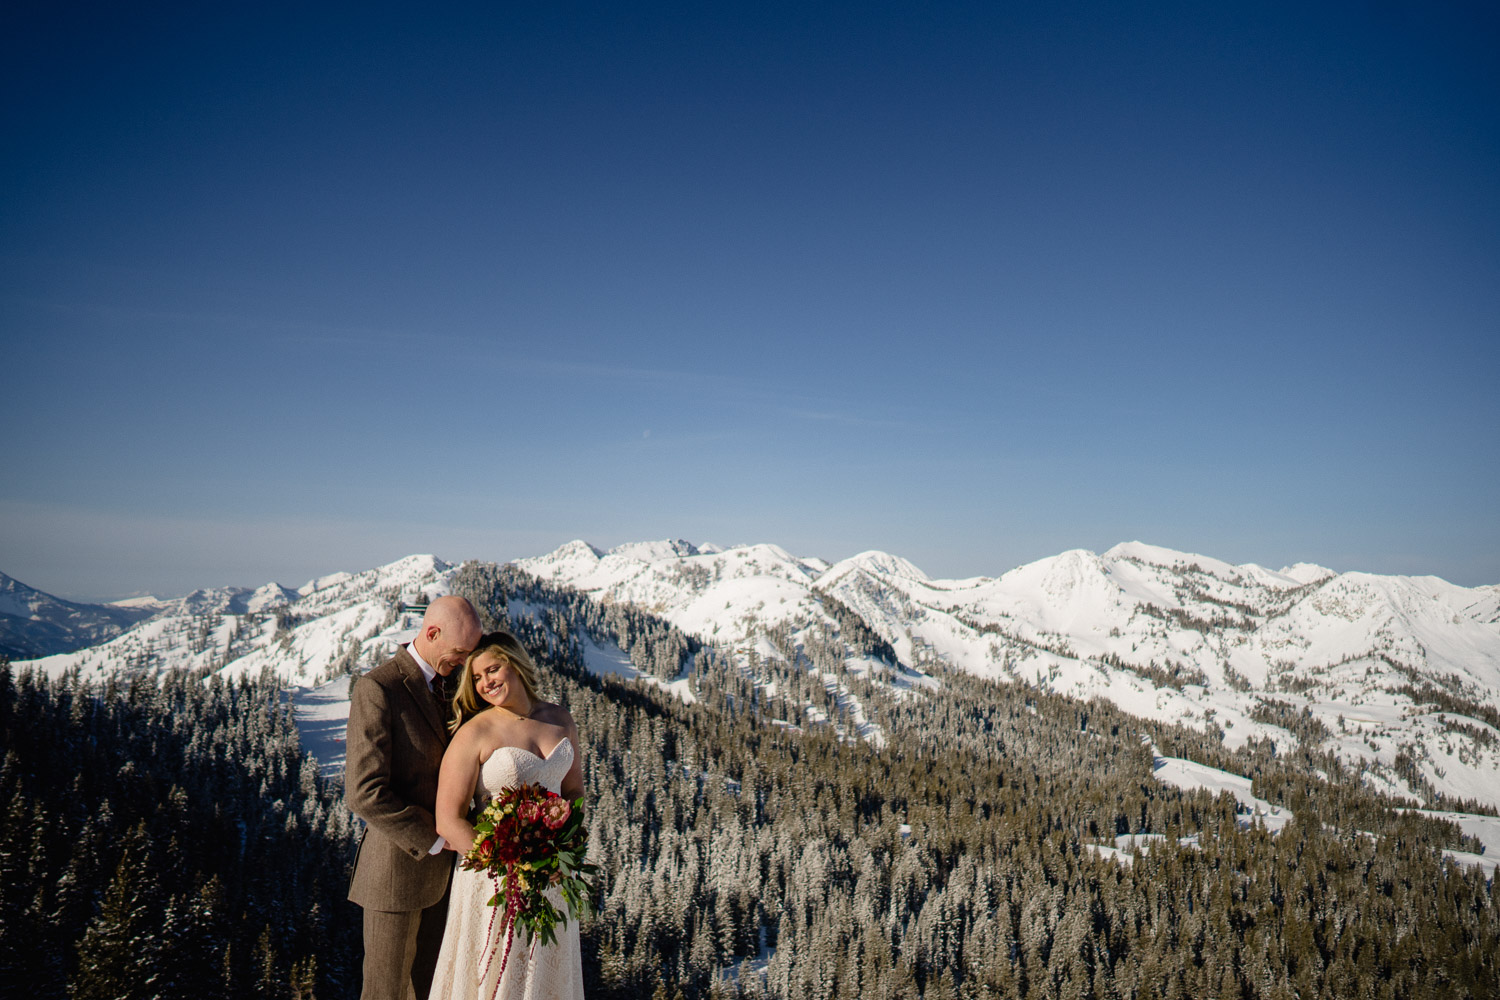 bride and groom embrace on mountain with trees